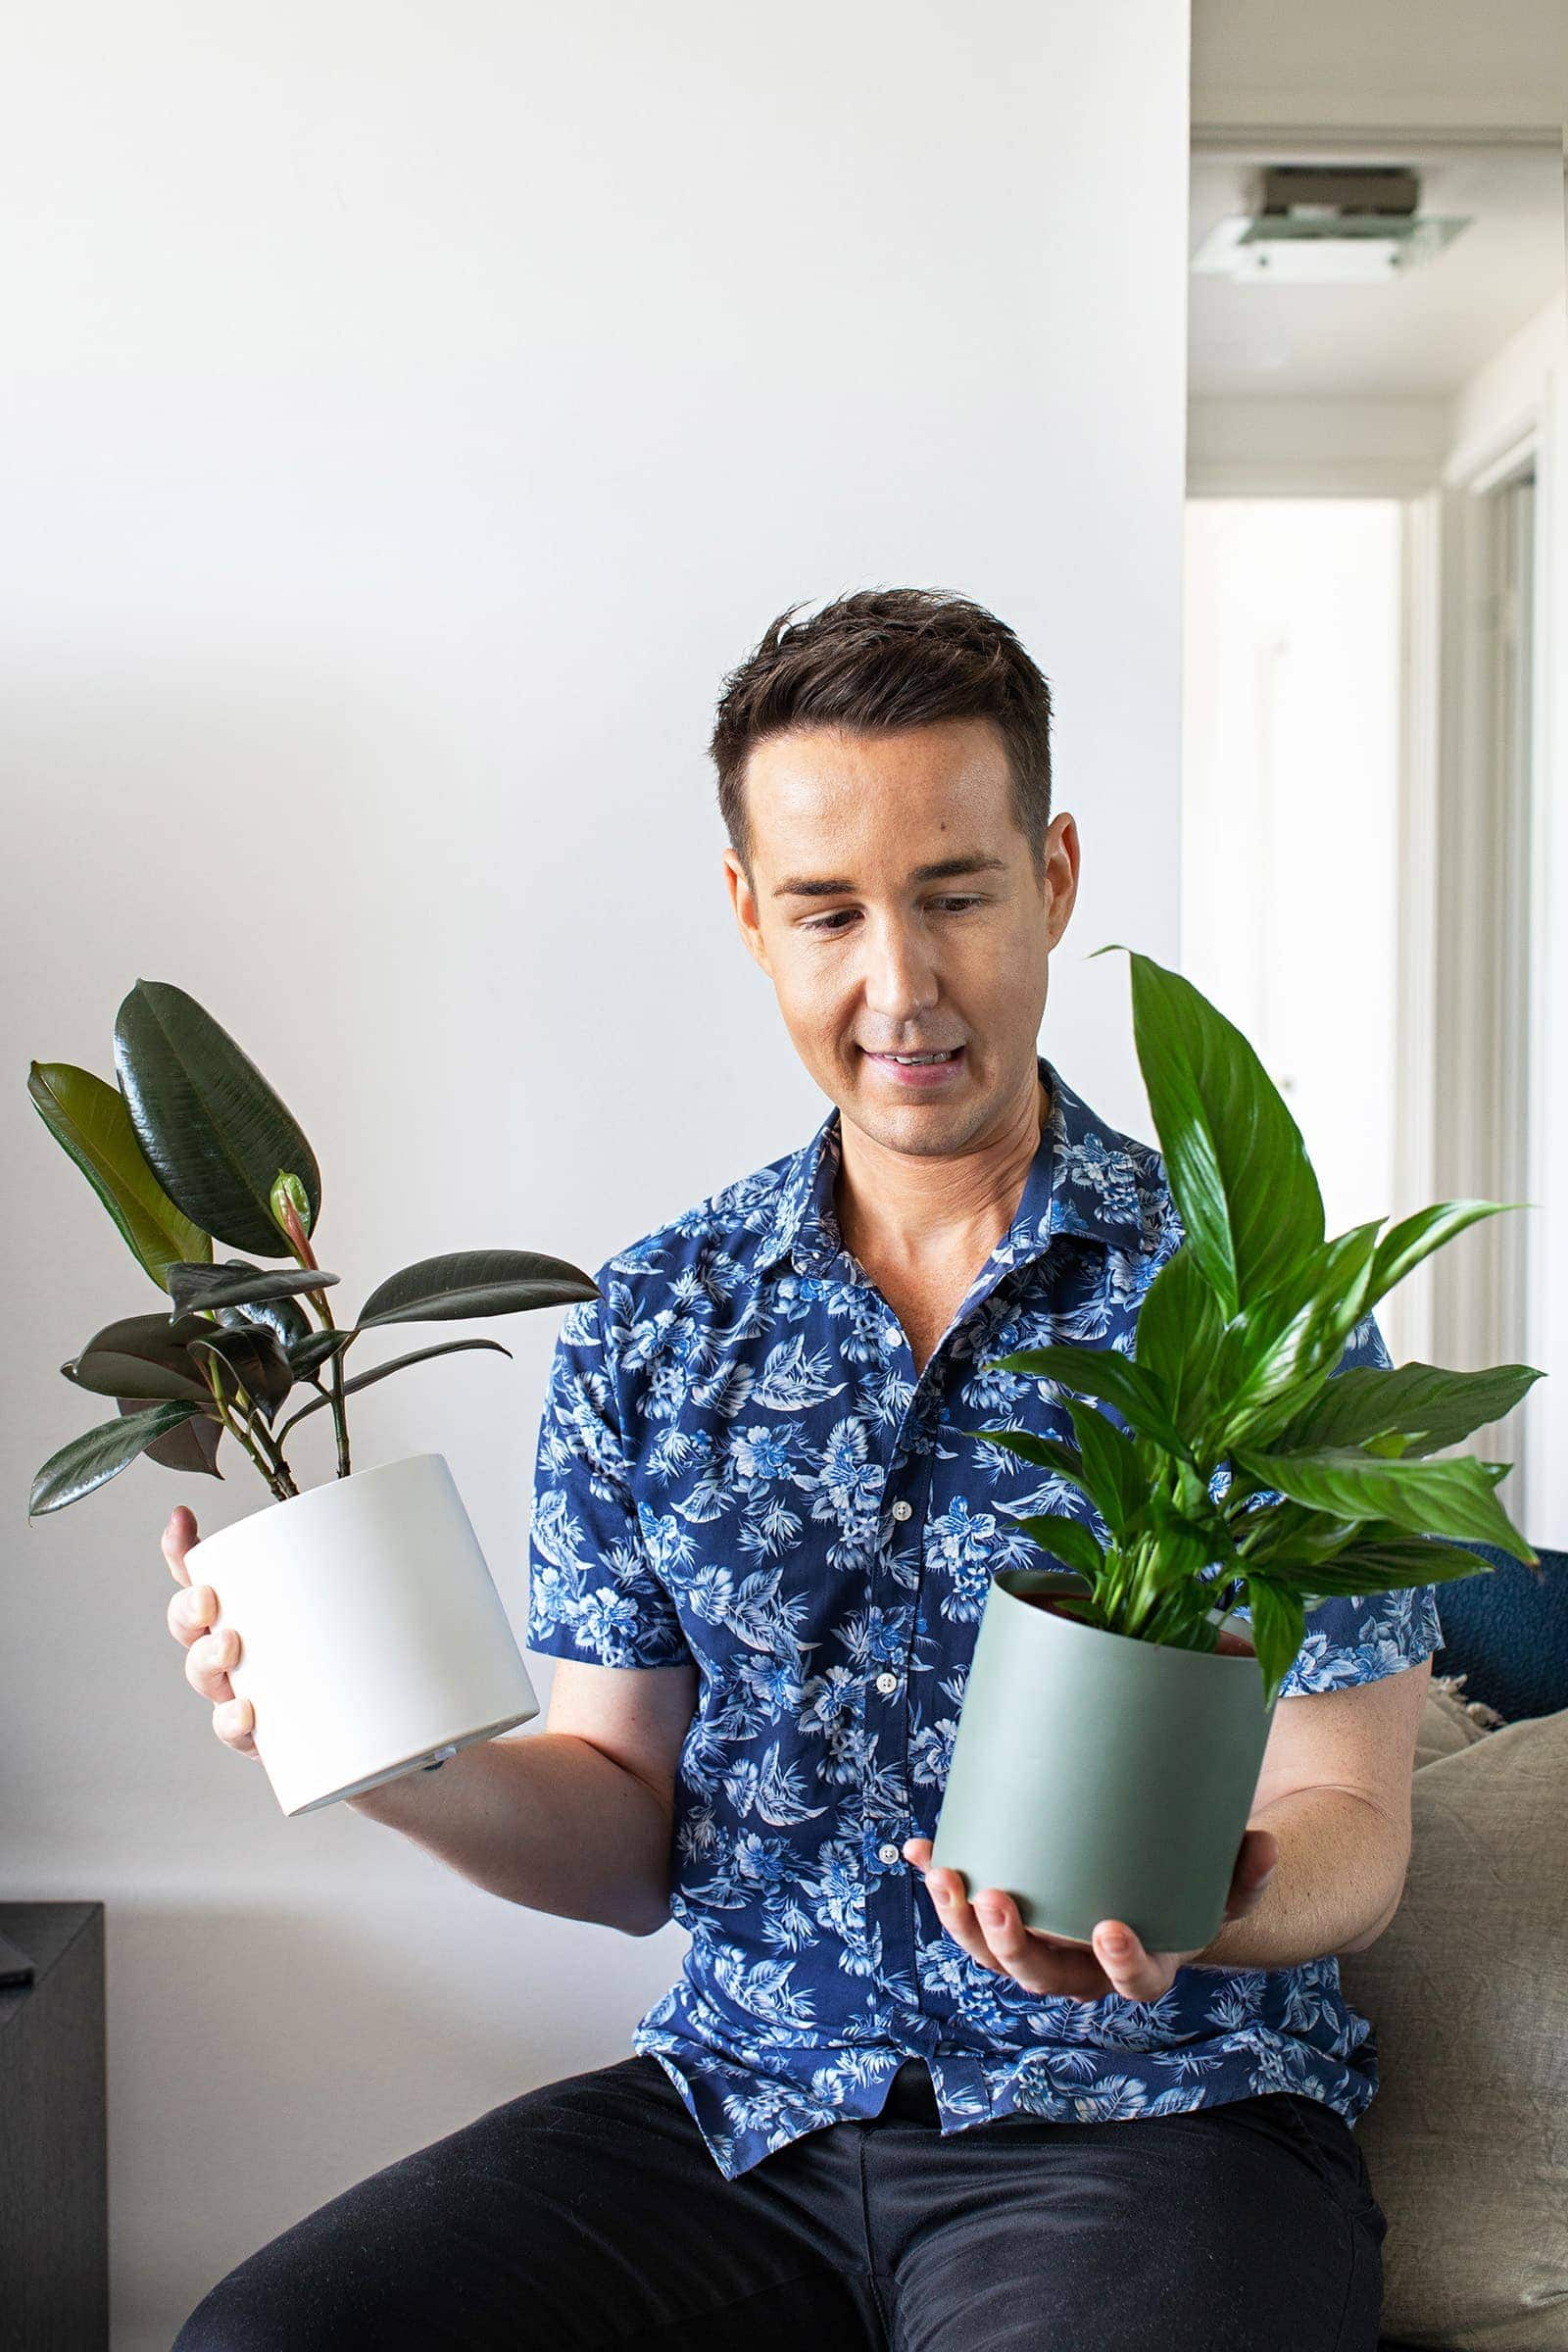 designer chris carroll indoor plants from bosque style indoor plant delivery service